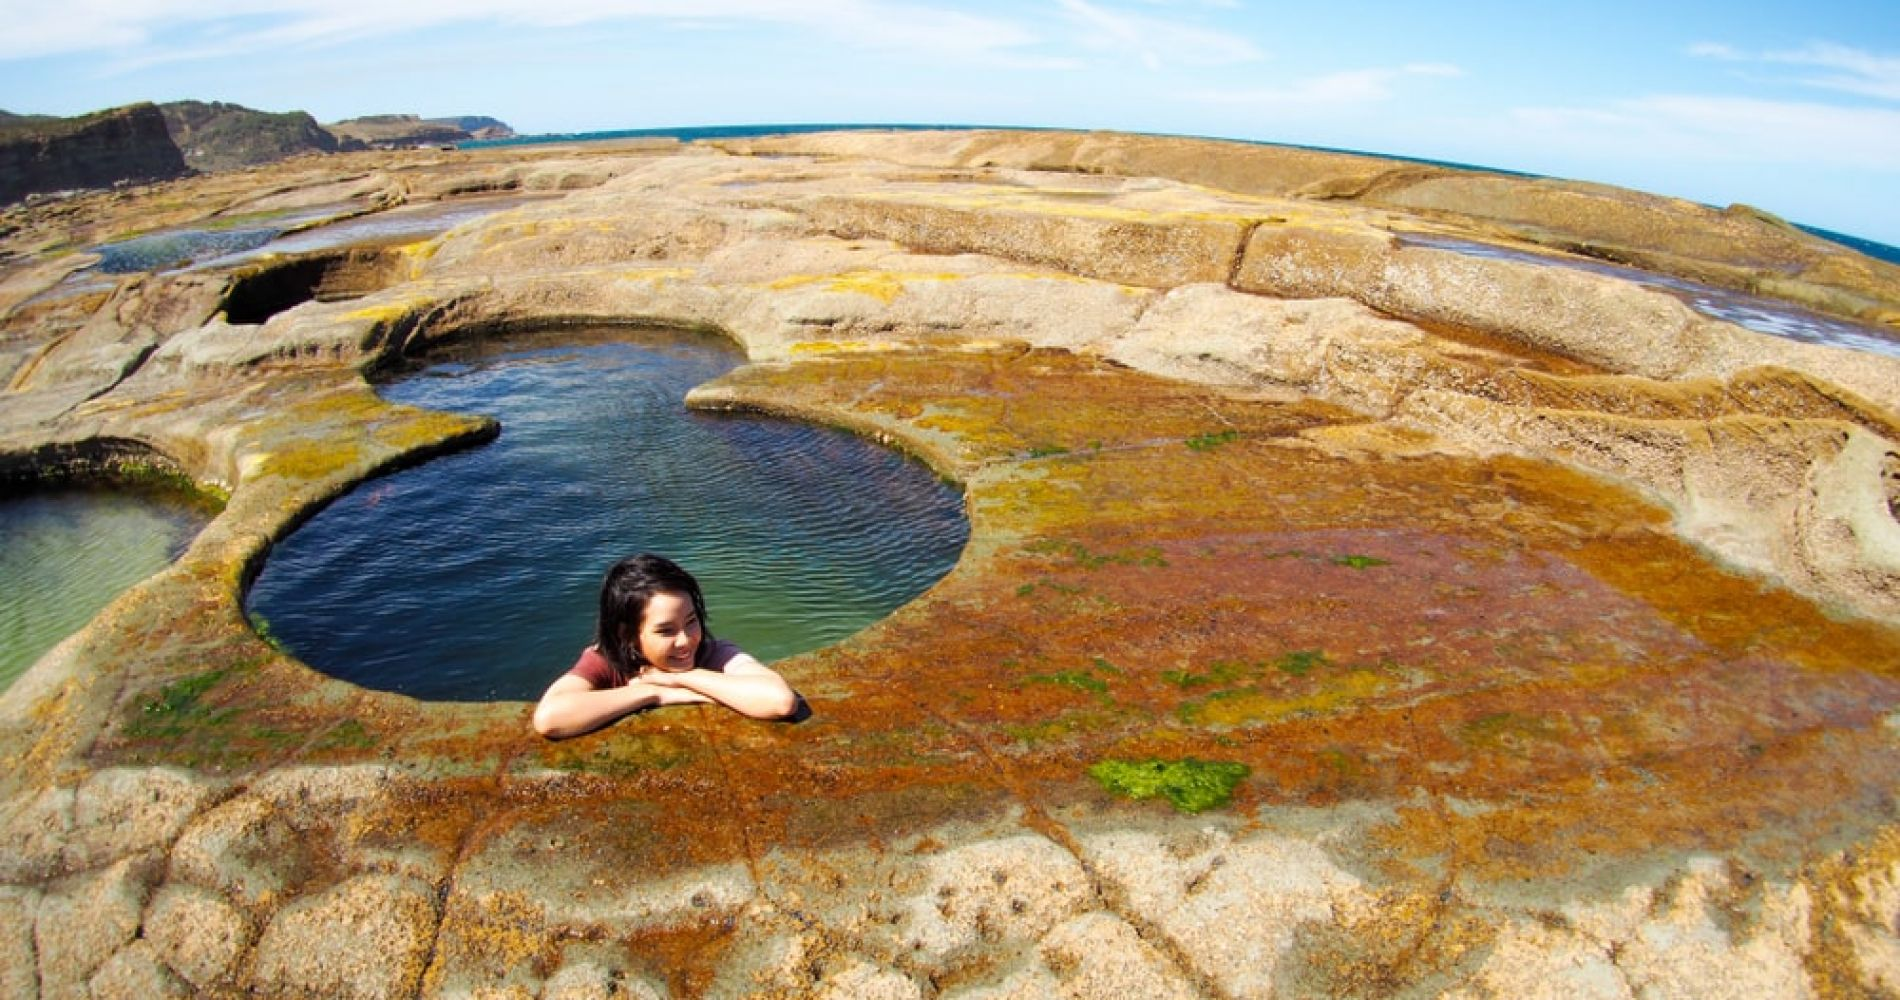 Go on a Costal Hike in the Royal National Park